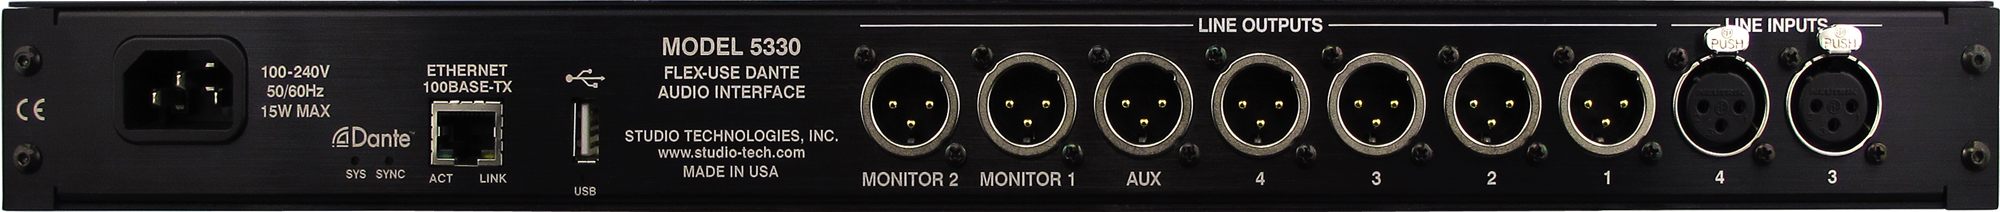 Model 5330 Flex-Use Dante Audio Interface